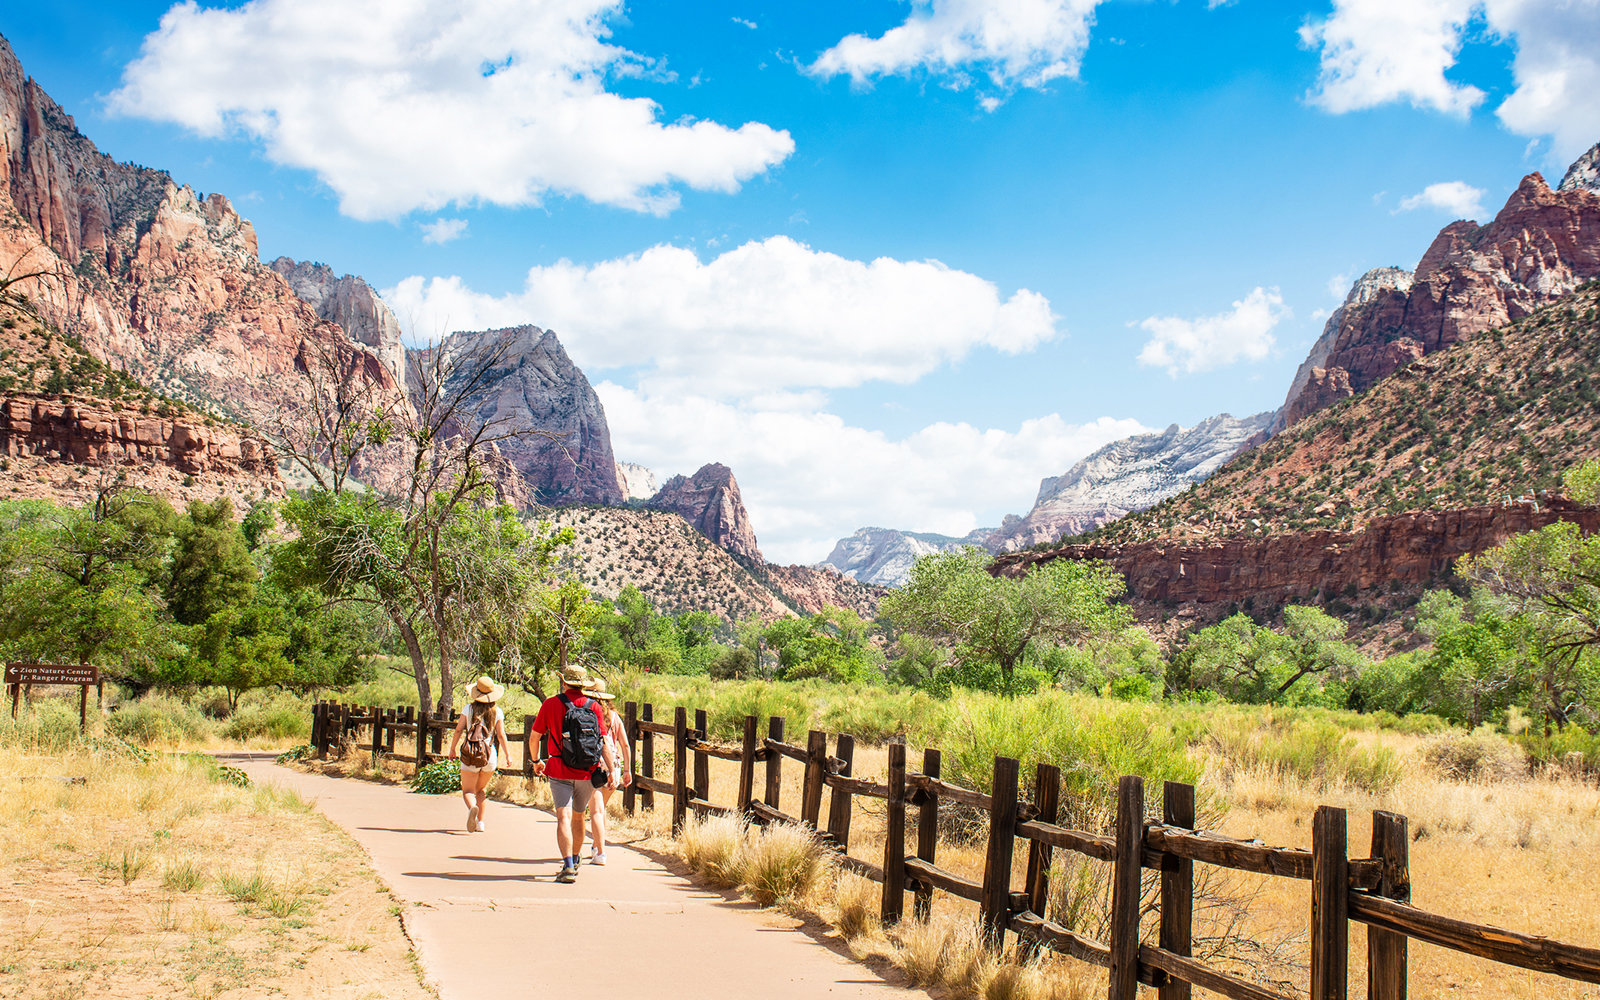 lead-family-hiking-zion-national-park-FAMTRAVEL0319.jpg